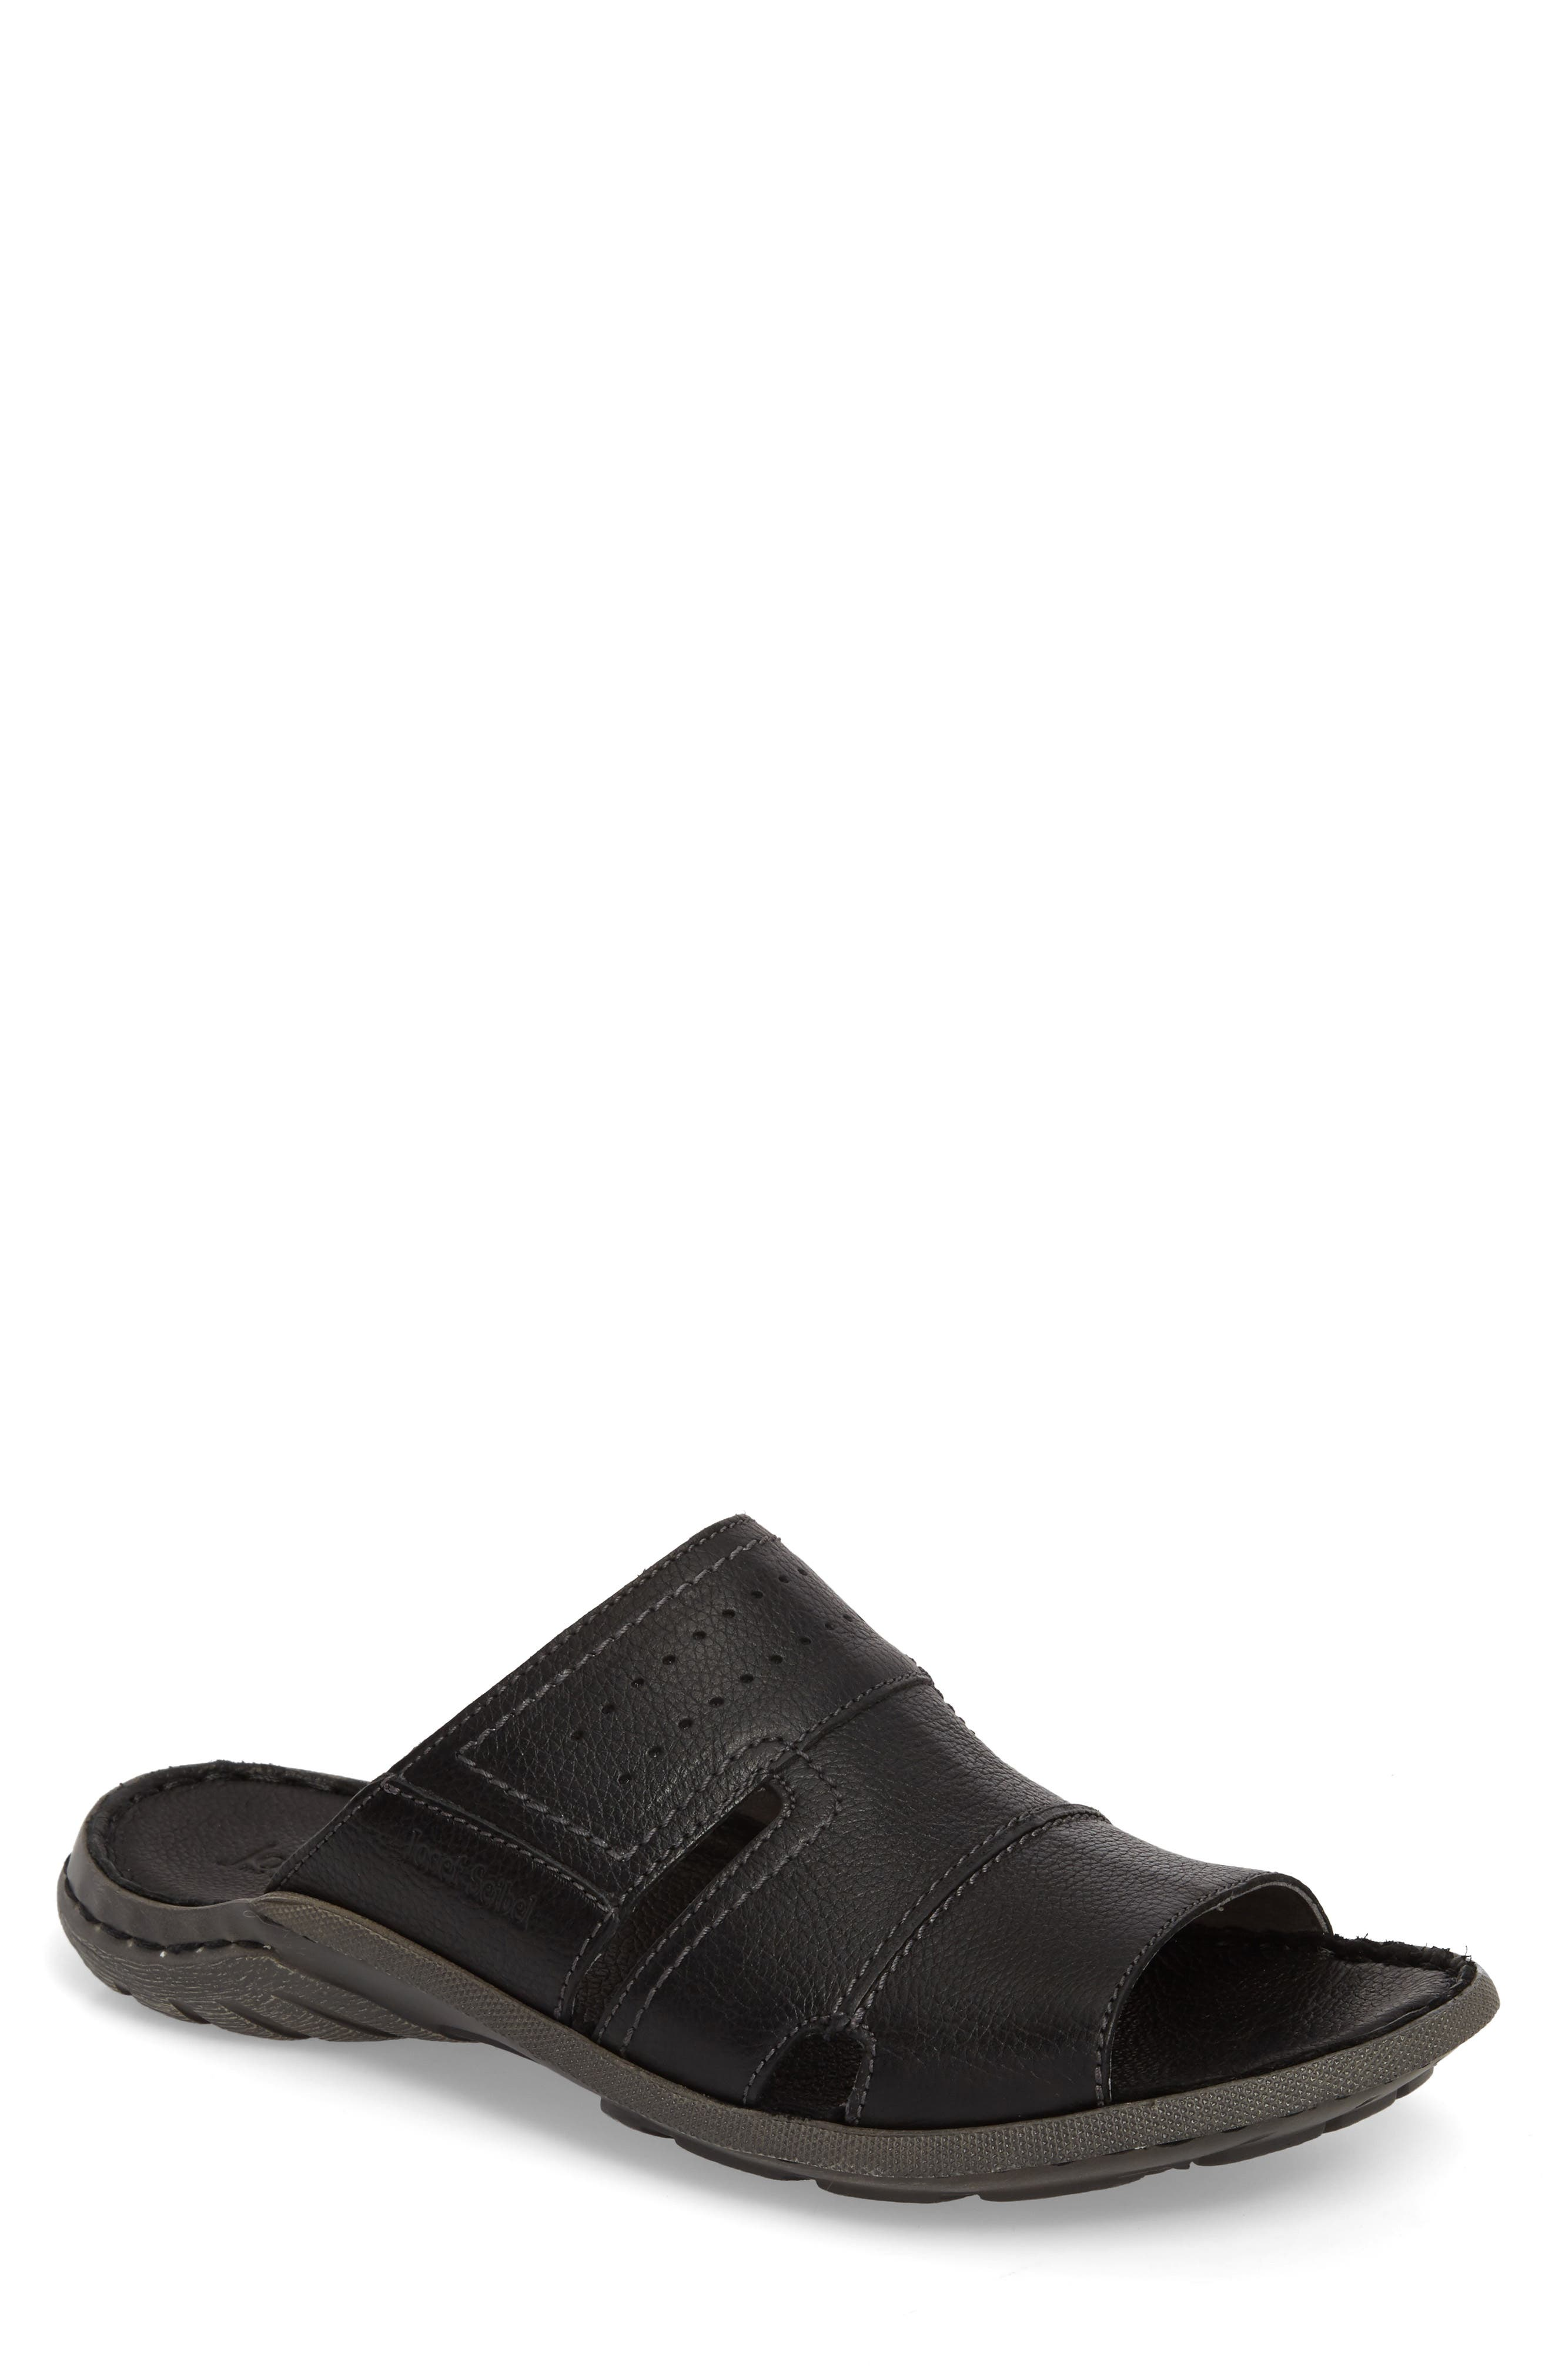 Logan Slide Sandal,                         Main,                         color, 004